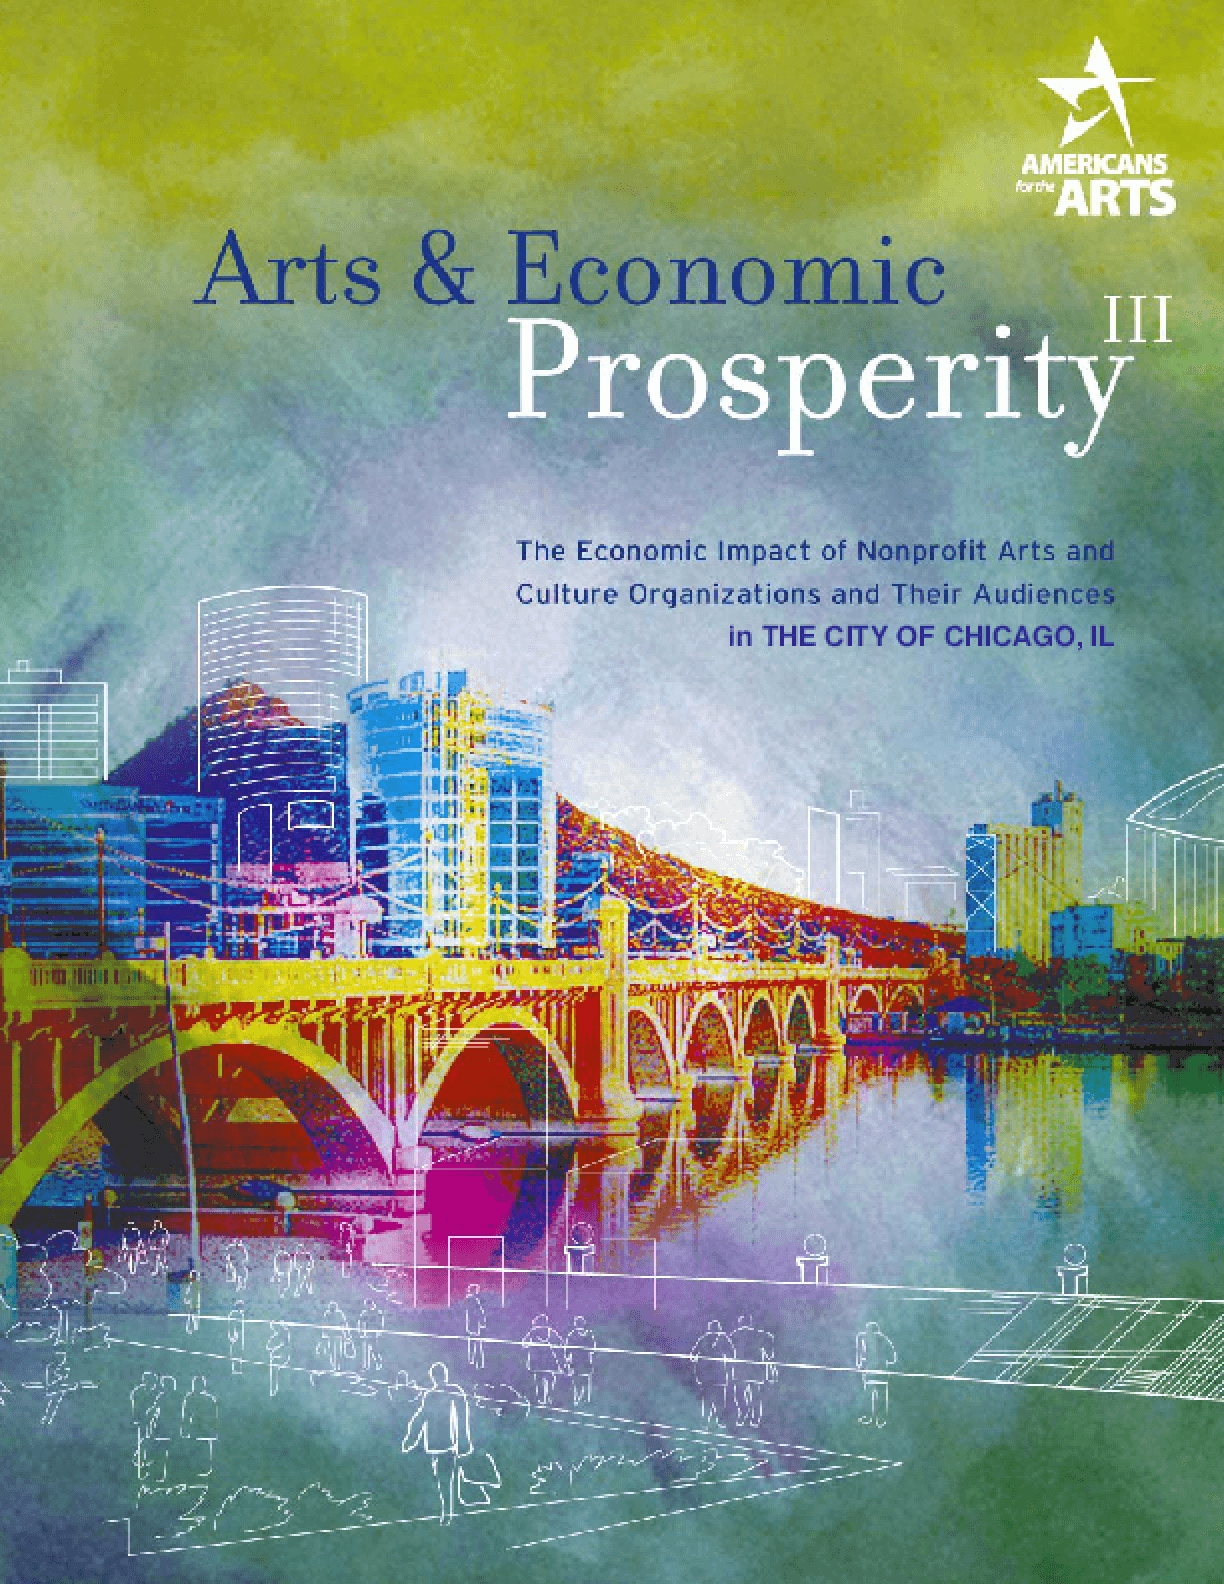 Arts & Economic Prosperity III: The Economic Impact of Nonprofit Arts and Culture Organizations and Their Audiences in the City of Chicago